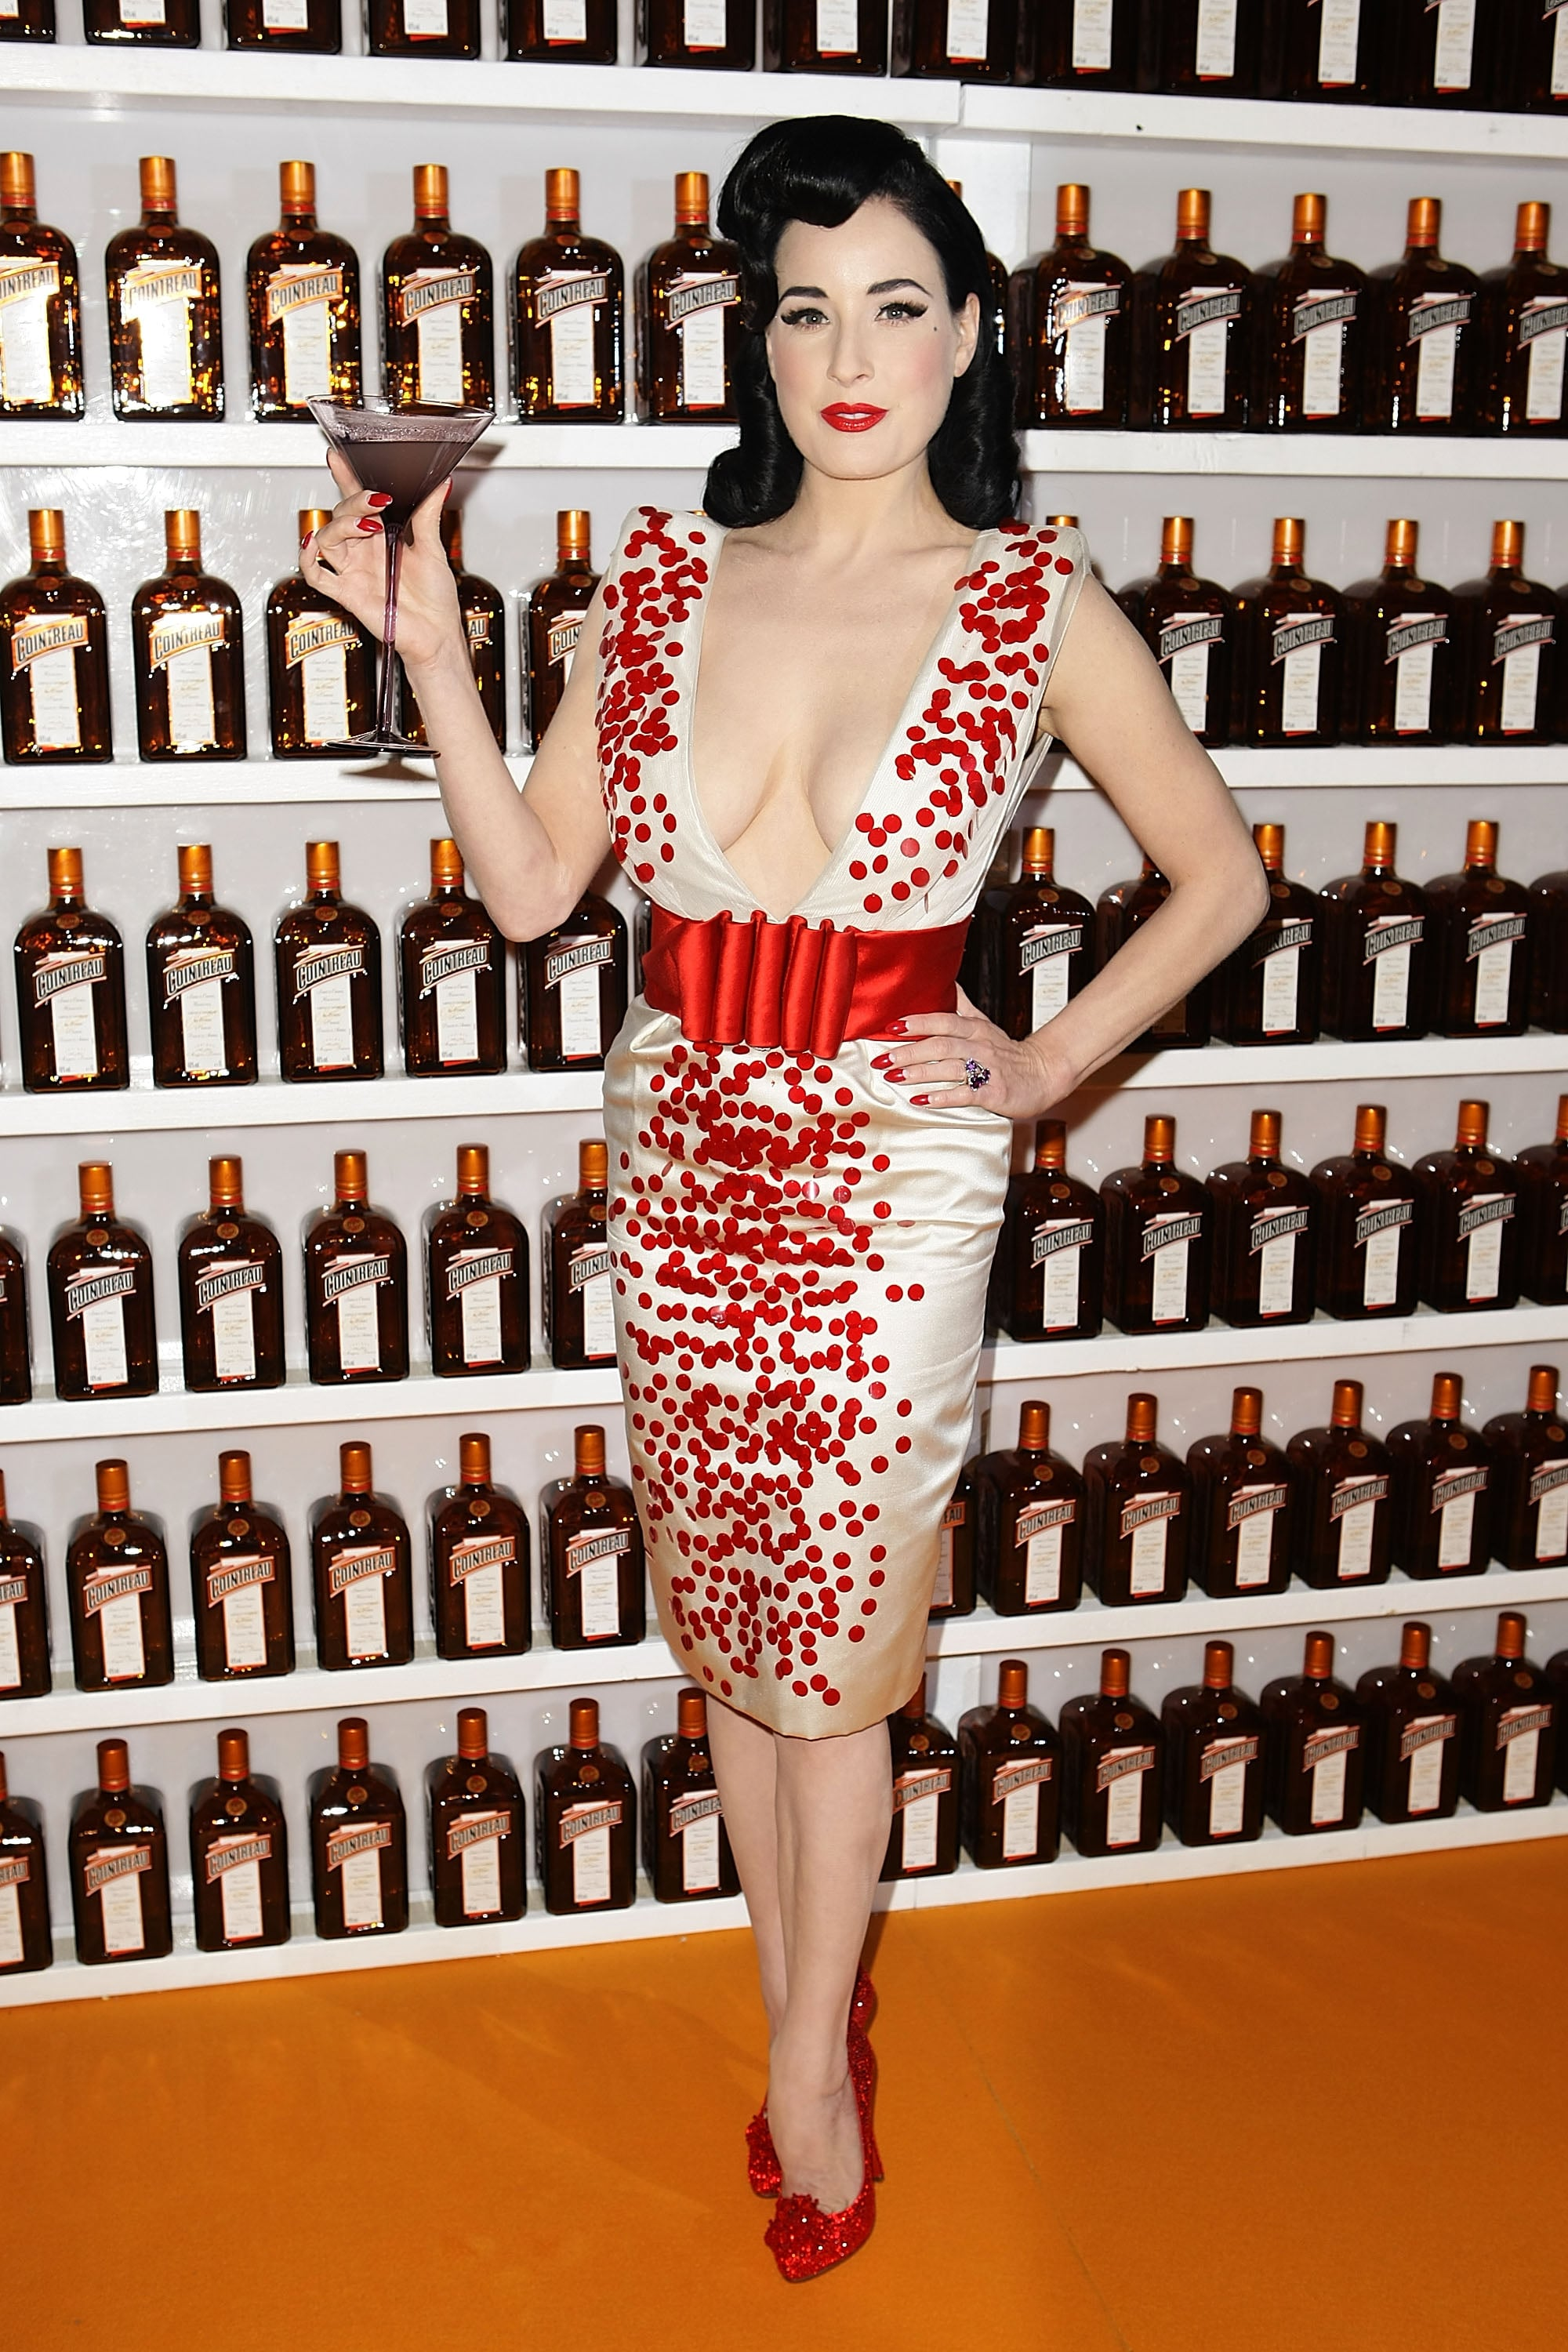 Dita Von Teese. Queen of burlesque 5